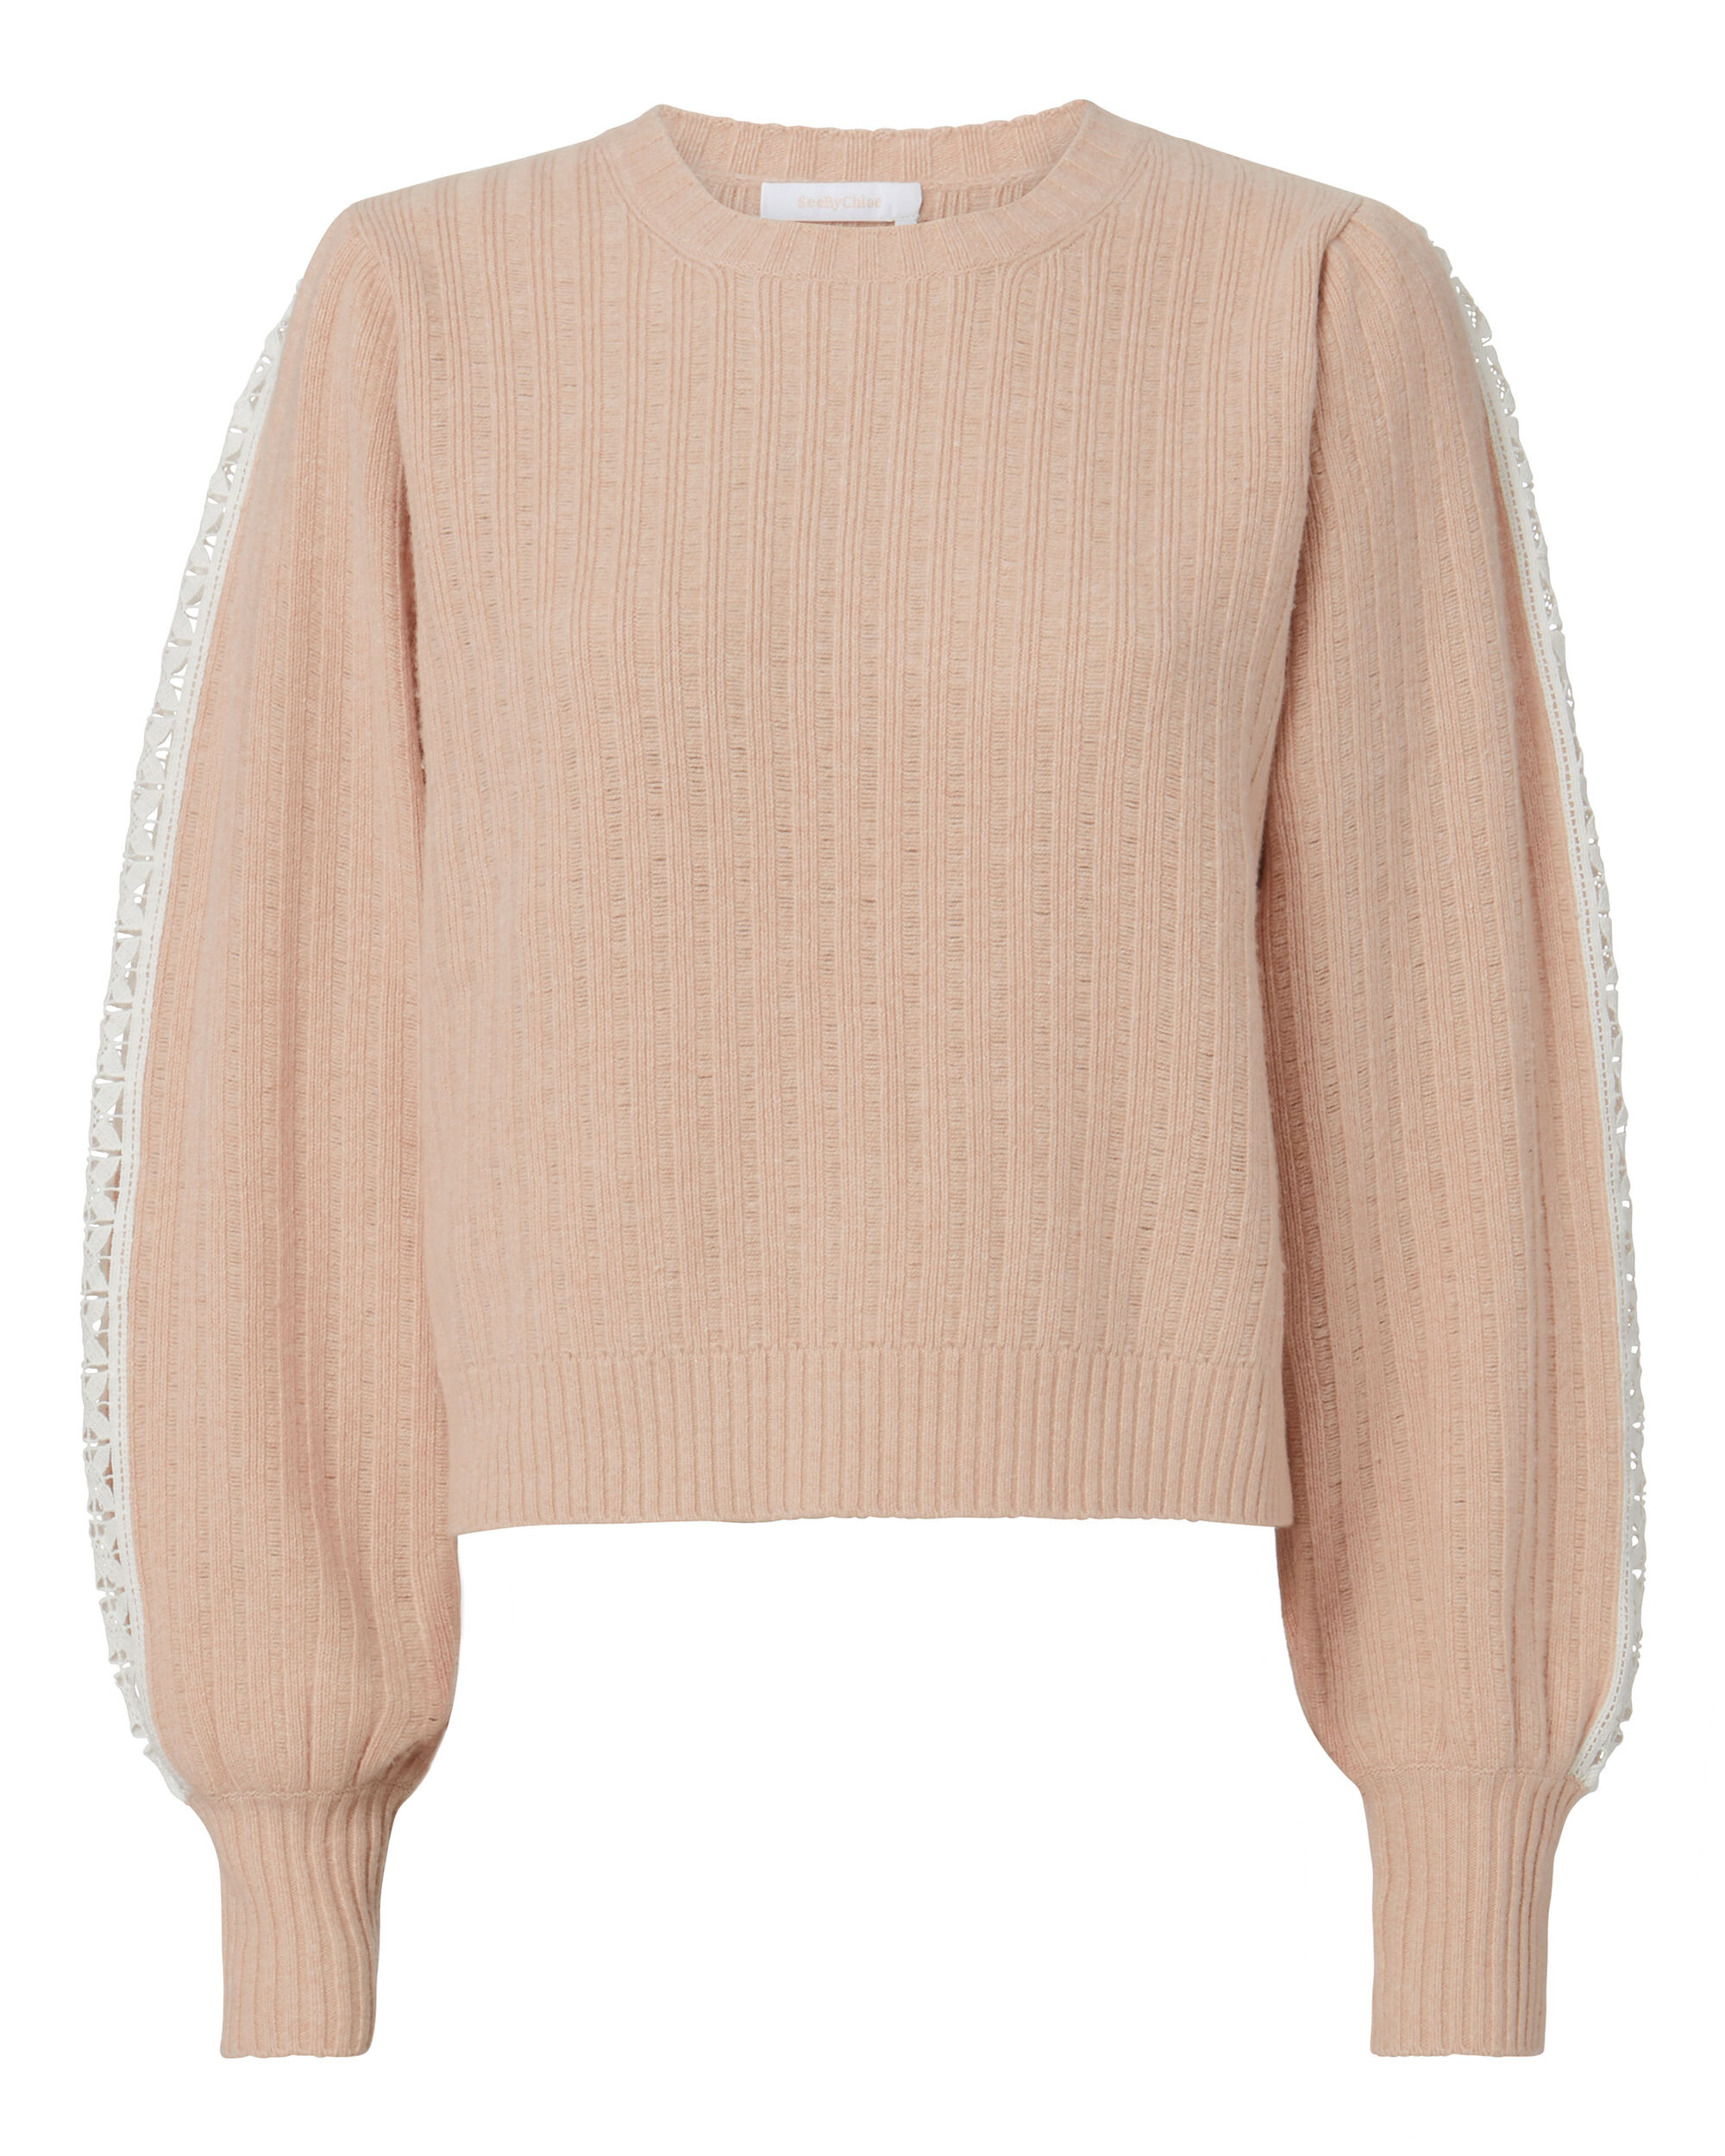 Crochet Detail Pullover, BLUSH/NUDE, hi-res